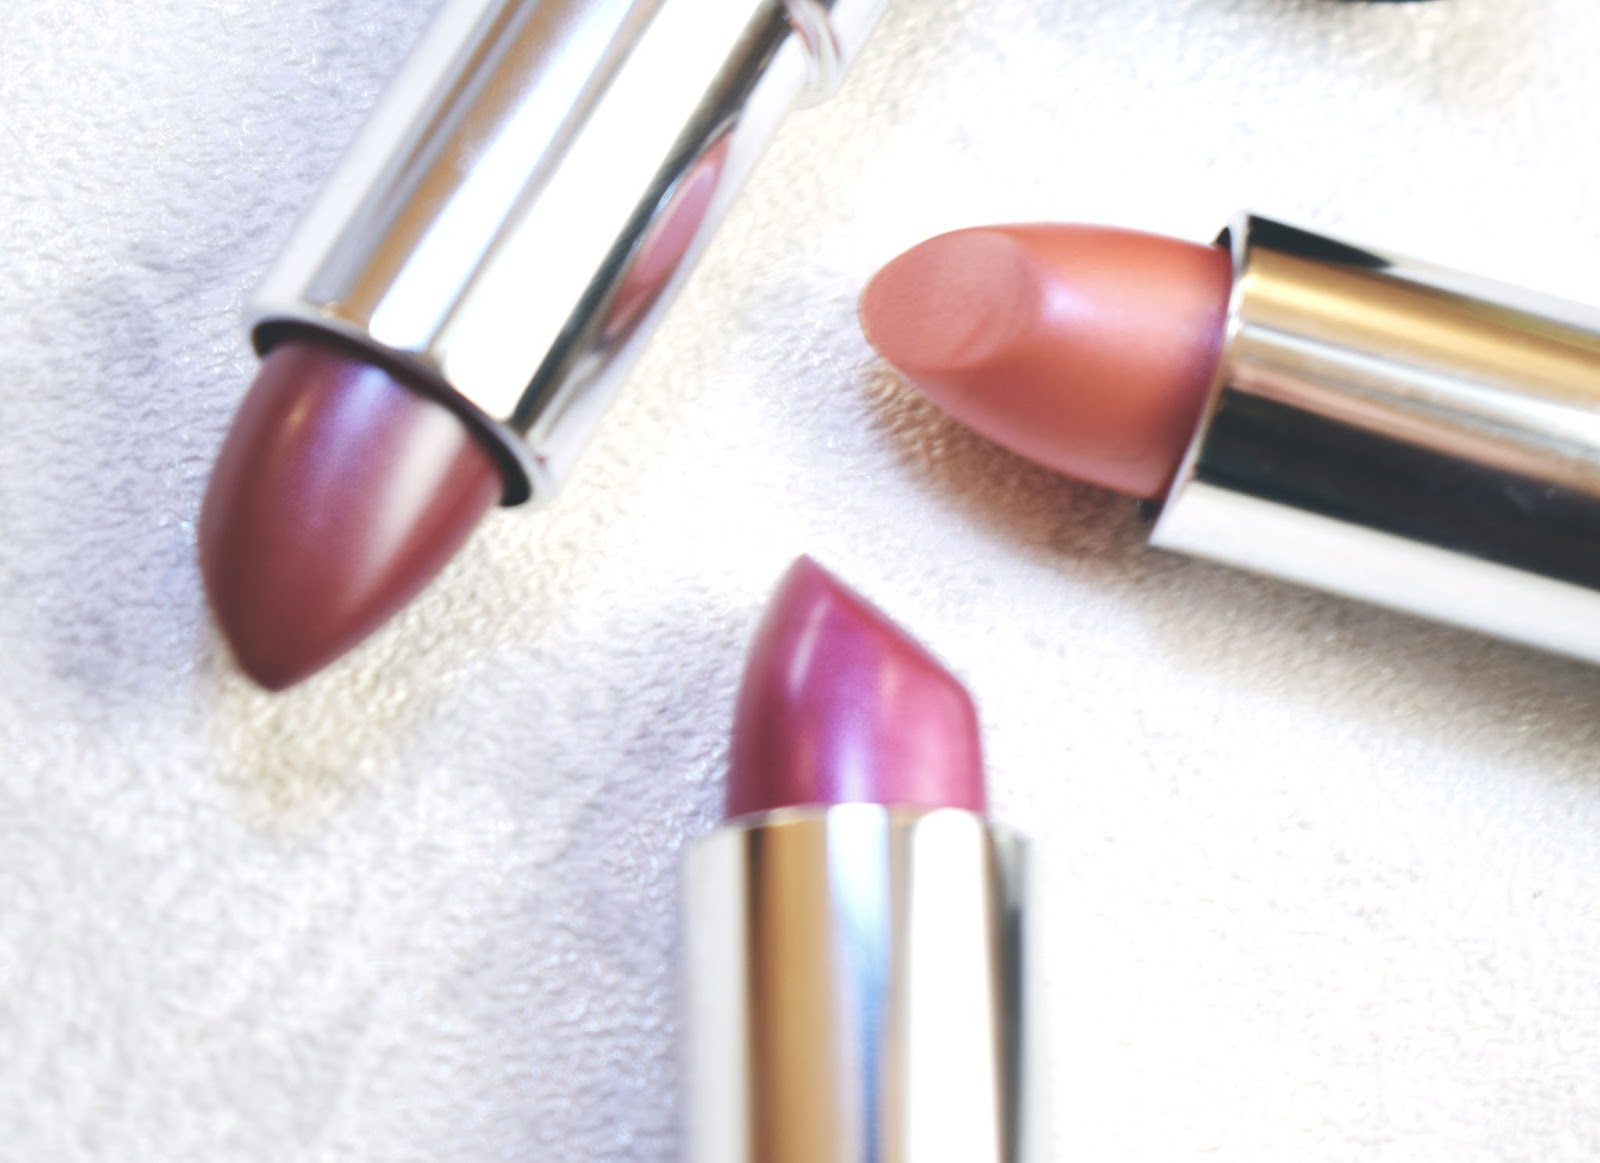 lebellelavie - Rimmel pink and nude lipsticks perfect for Summer!